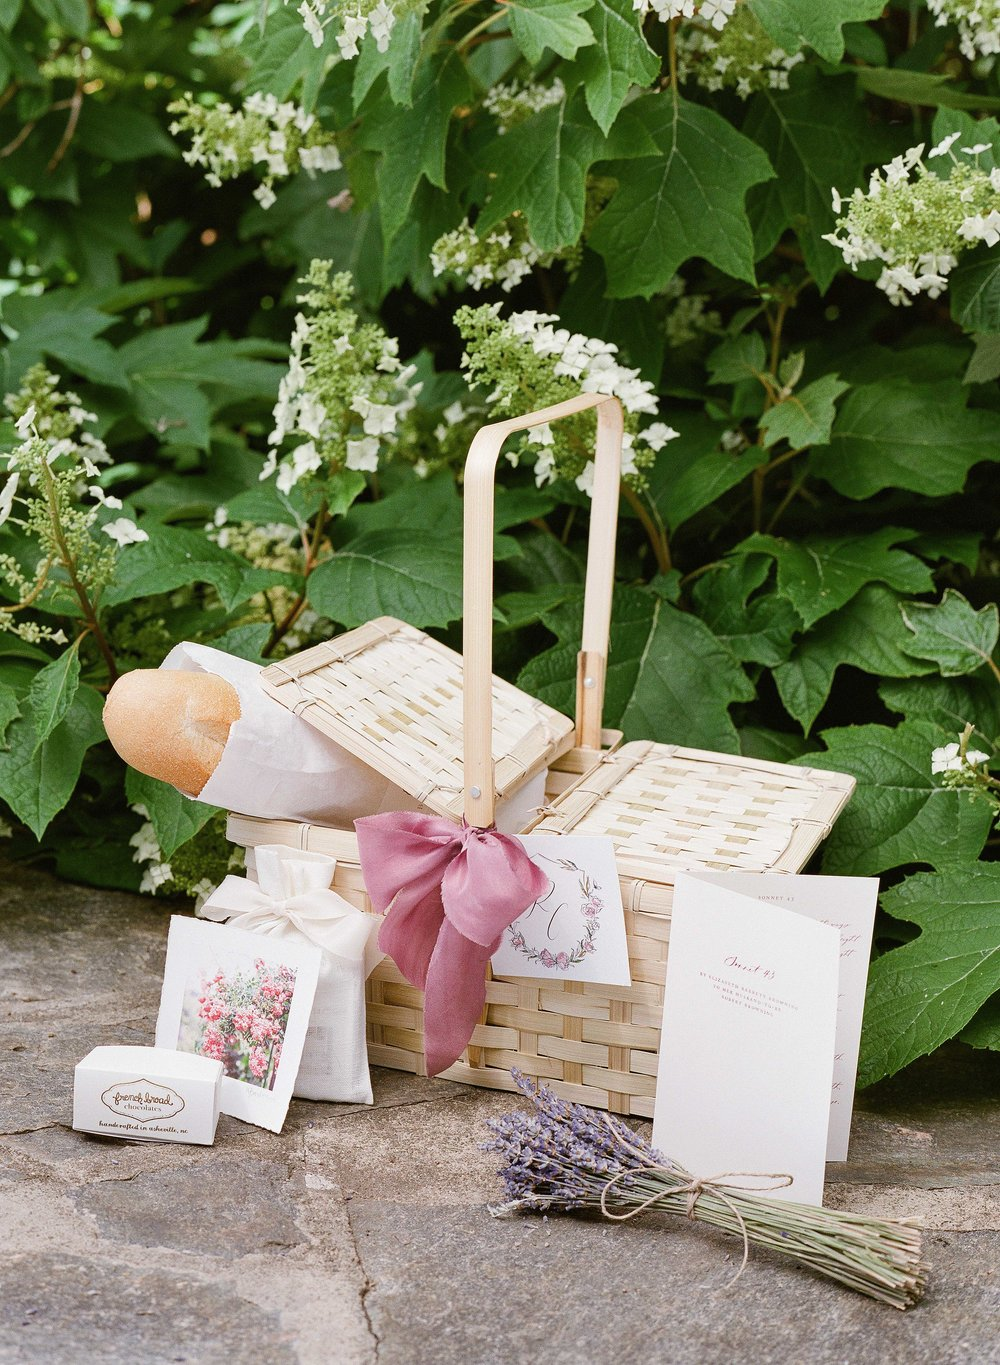 rebecca-clay-wedding-north-carolina-welcome-baskets-103228790.jpg